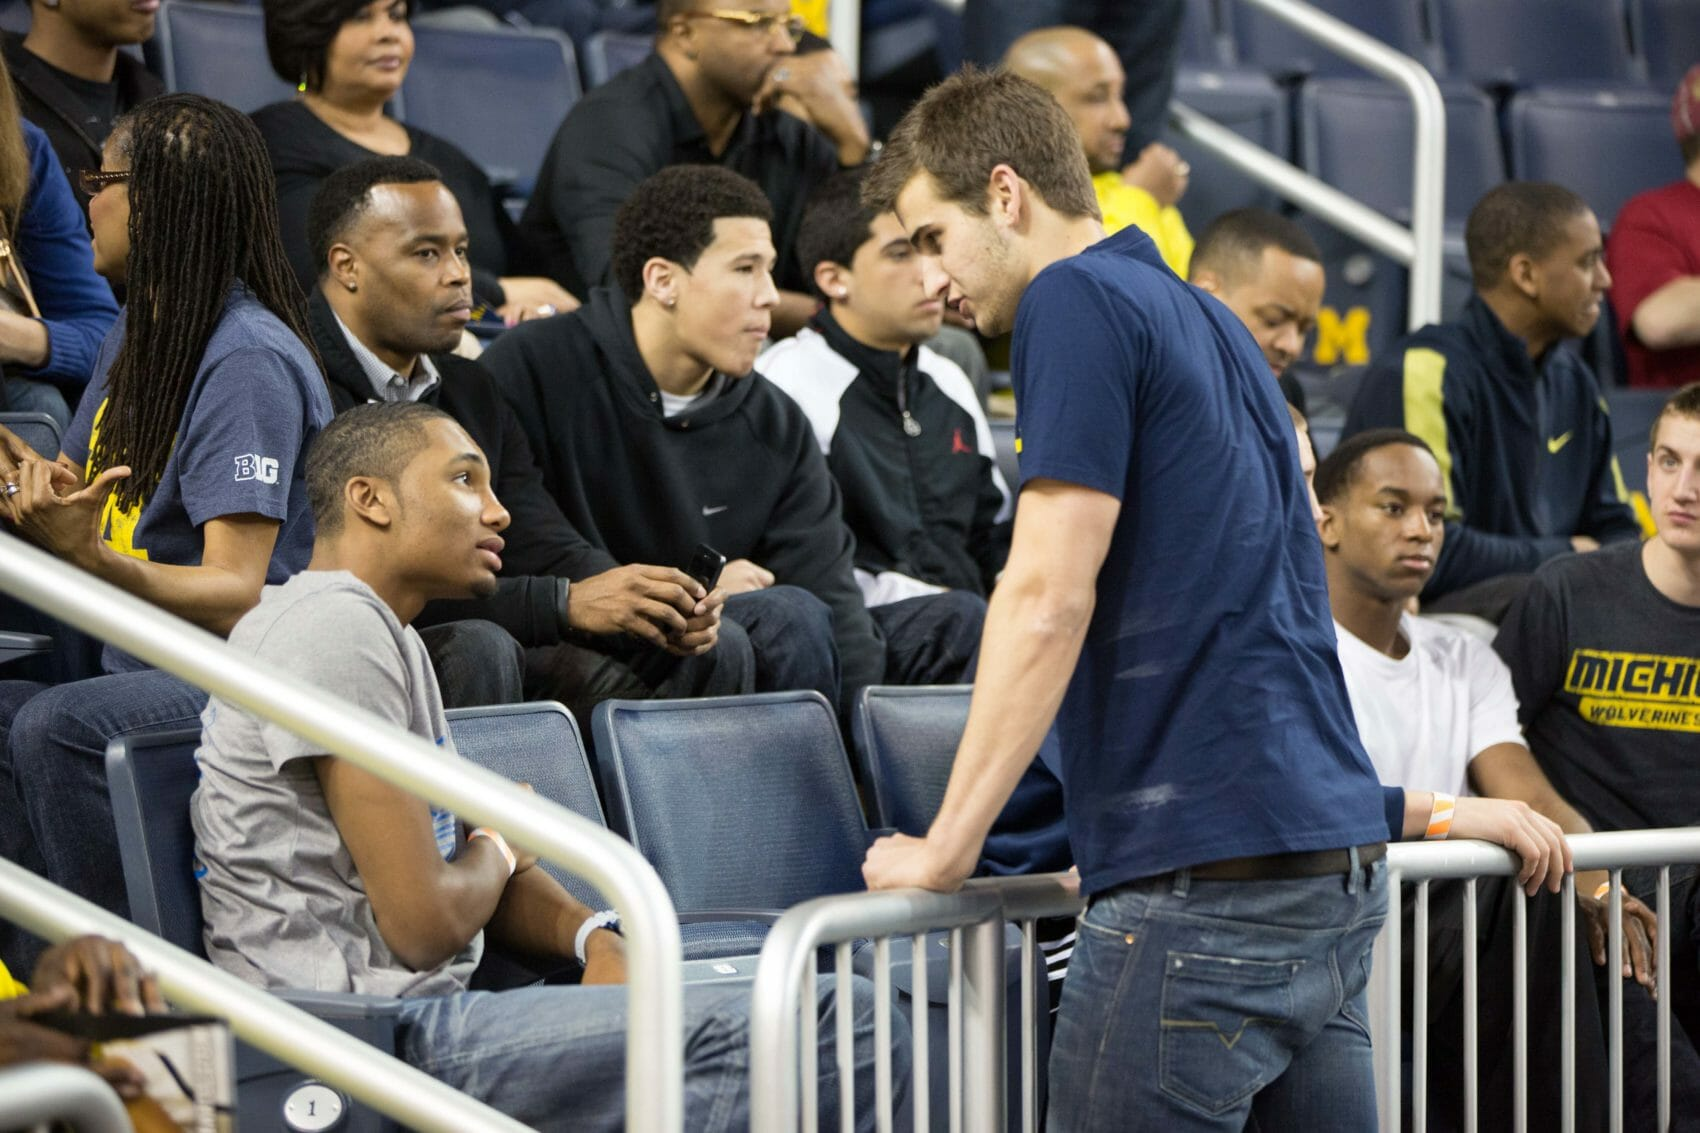 Zak Irvin and Austin Hatch at Michigan-Indiana